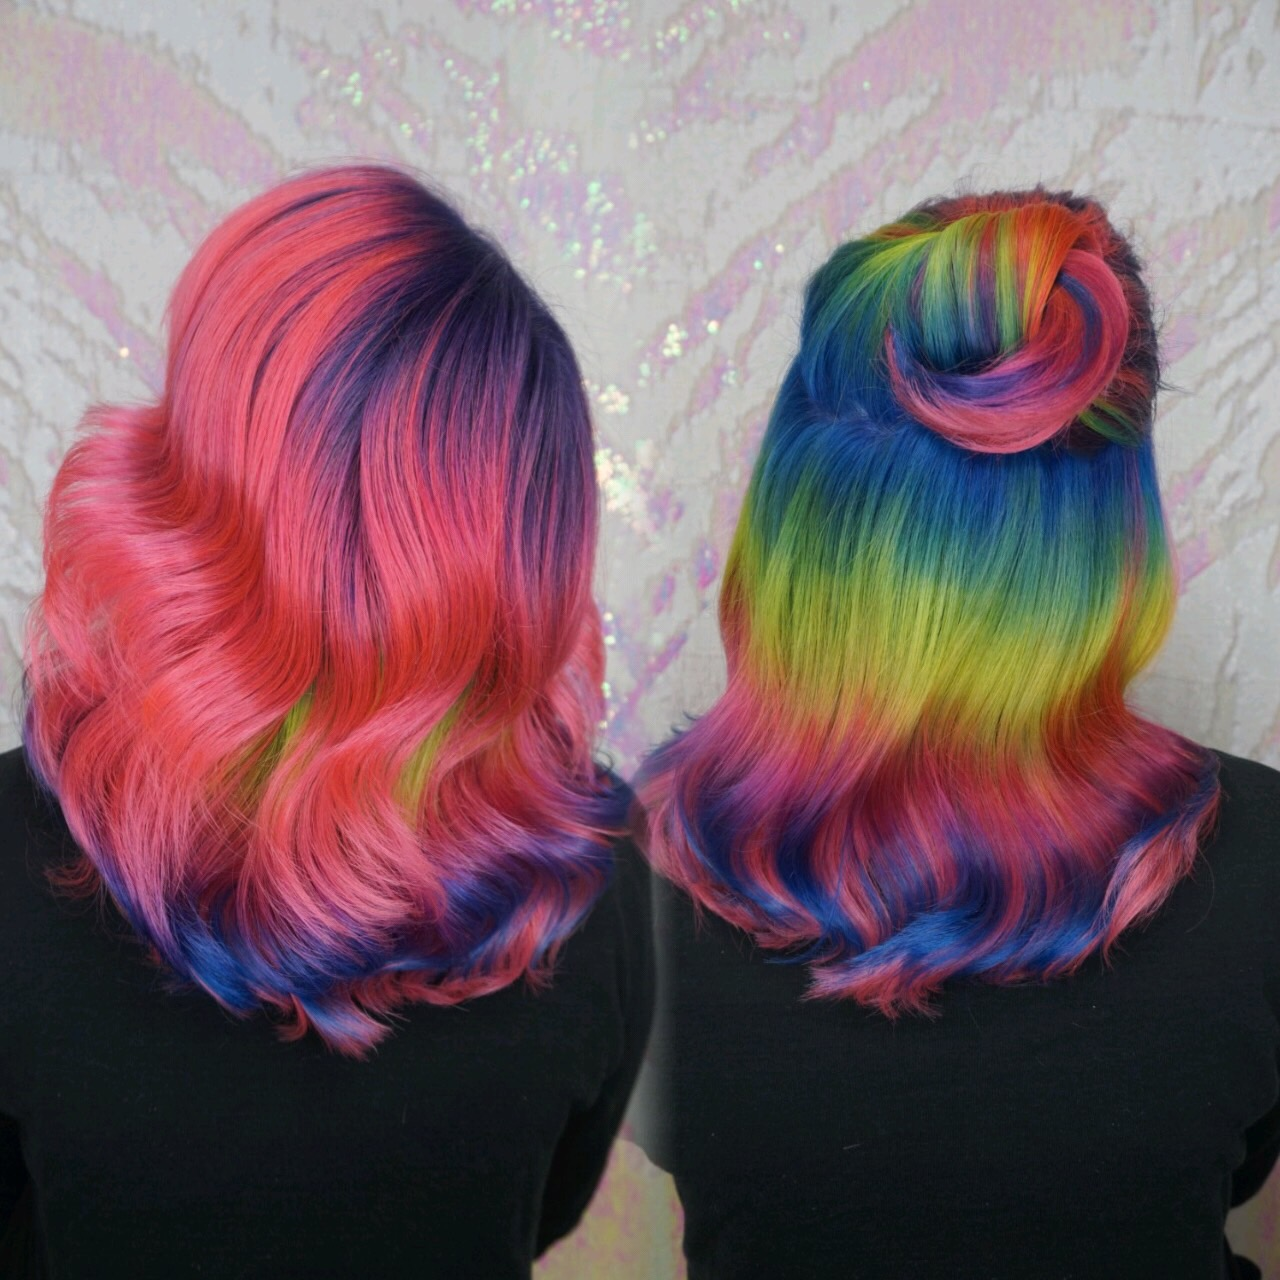 Pink and Rainbow Hair Cryistal Chaos